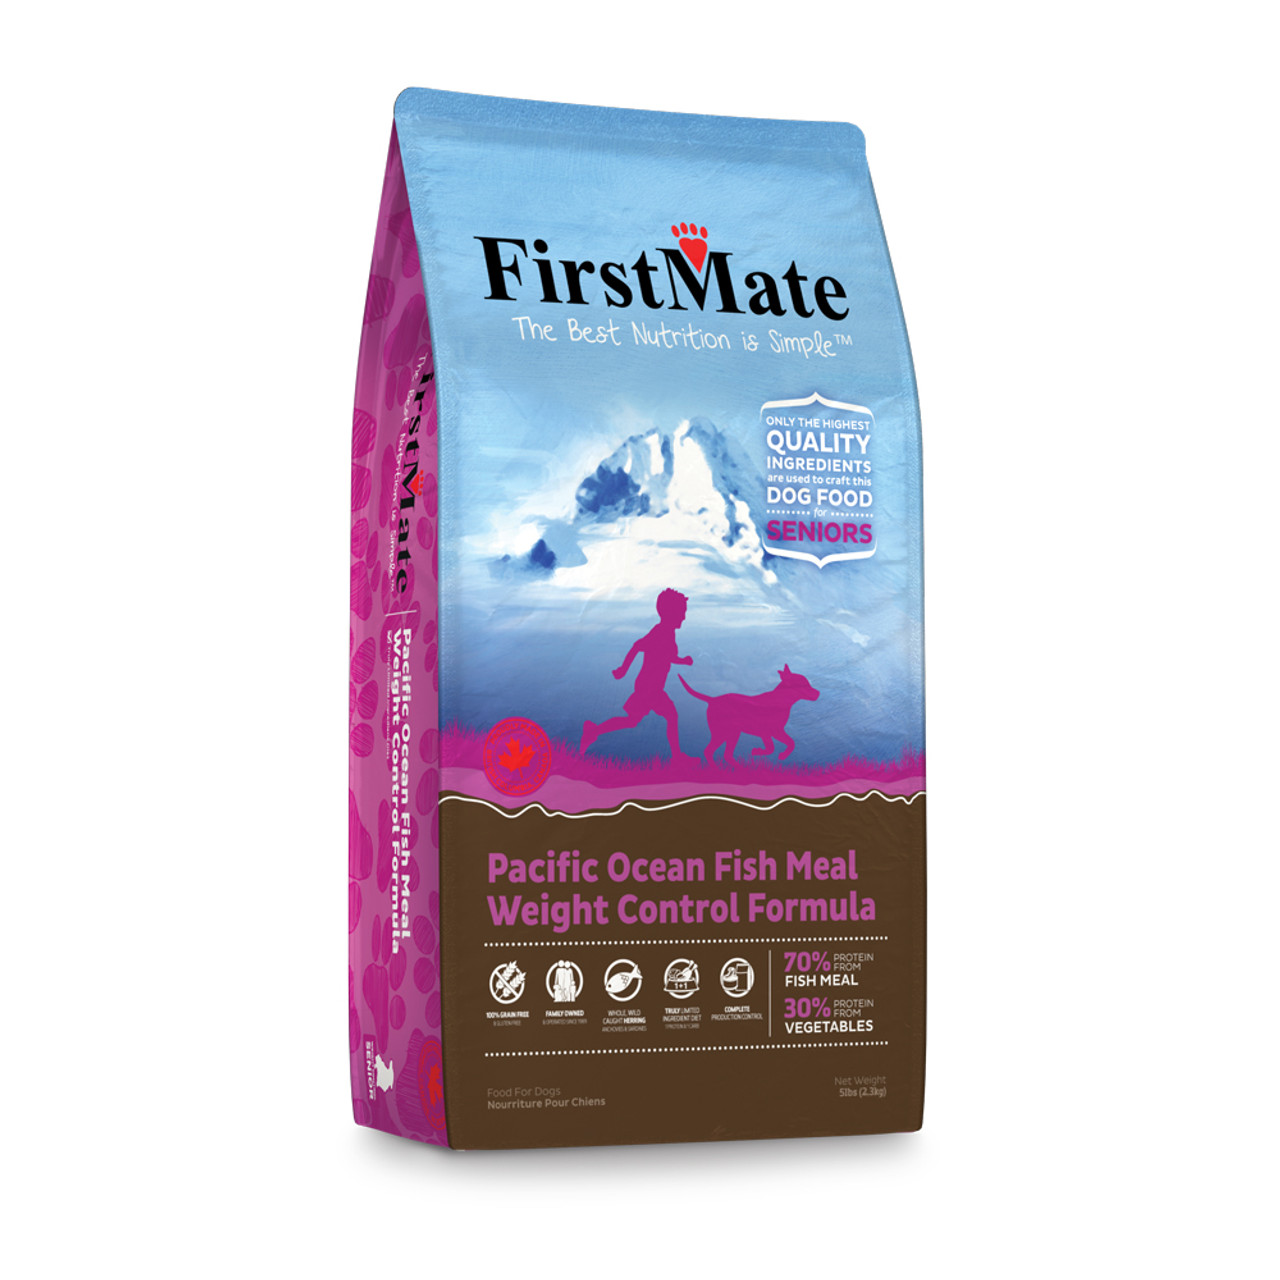 FirstMate Pacific Ocean Fish Meal Weight Control Formula Dry Dog Food